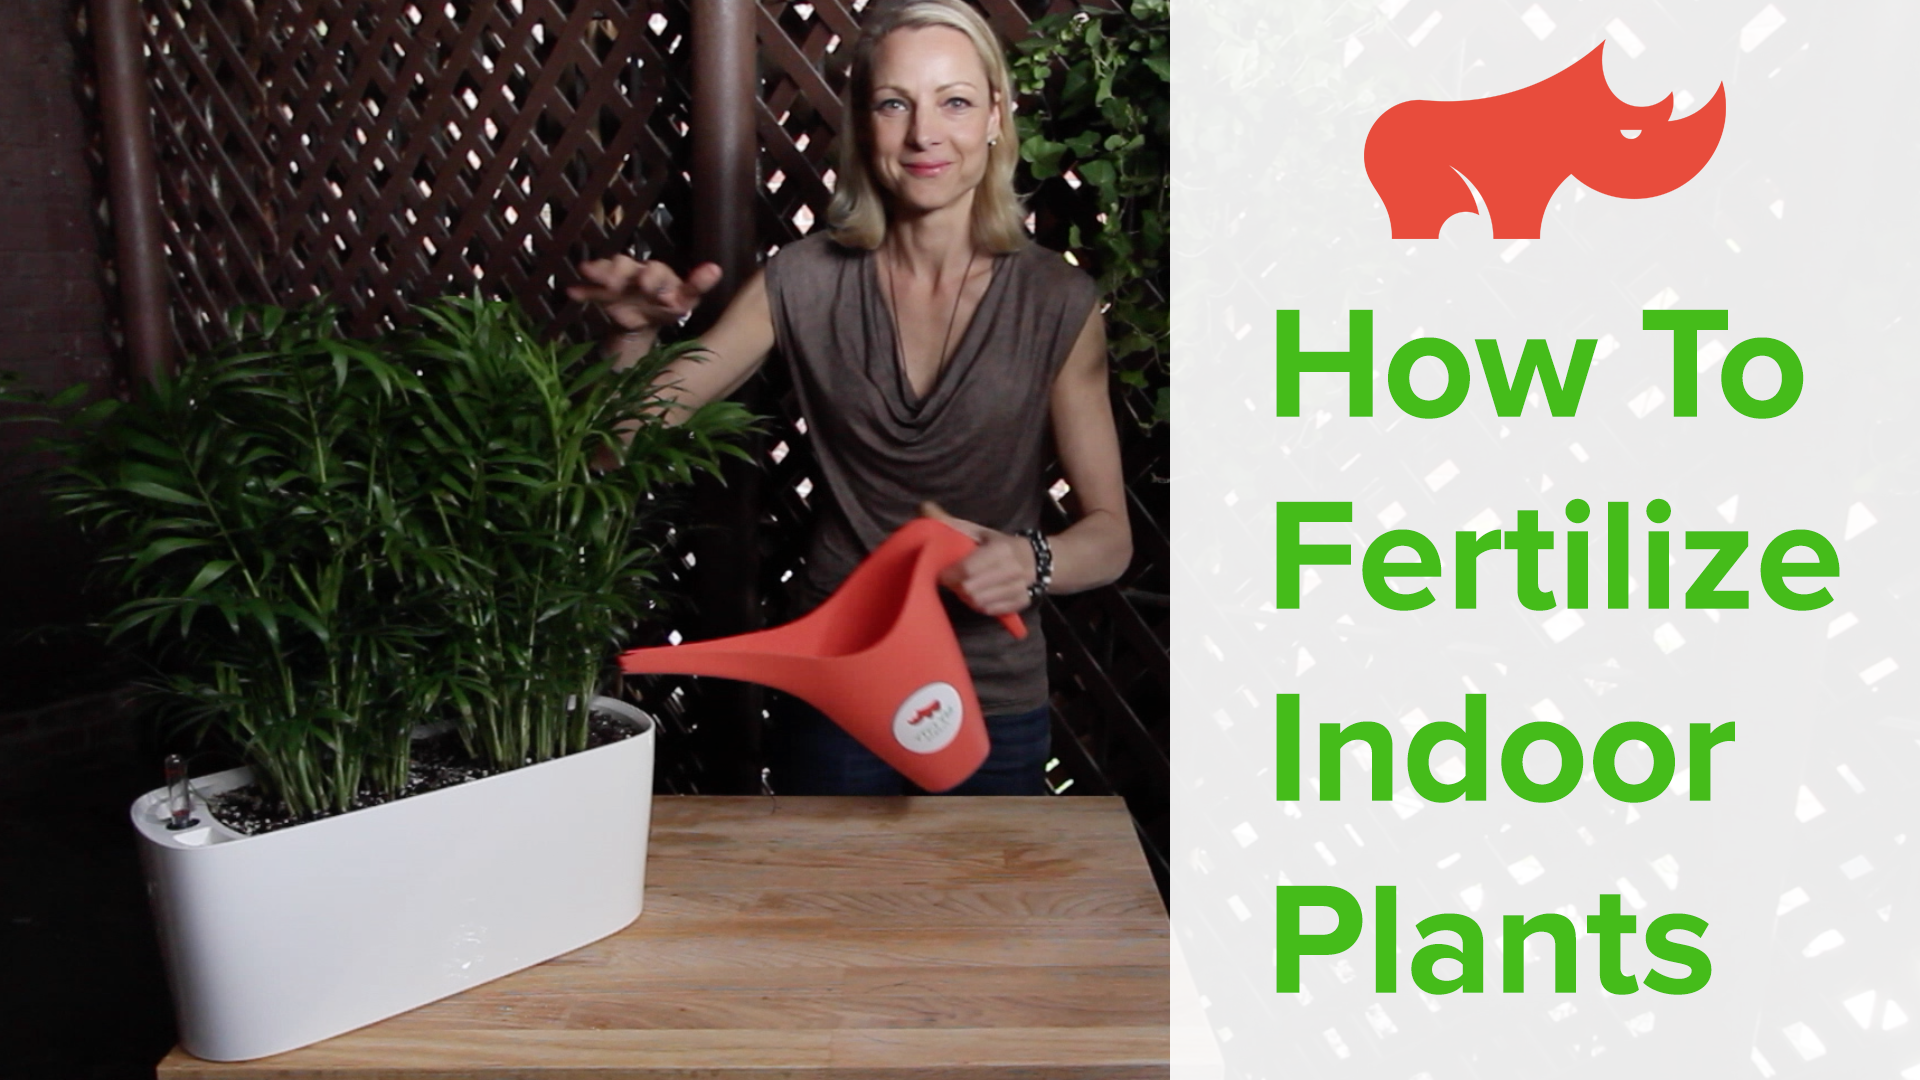 How To Fertilize Indoor Plants